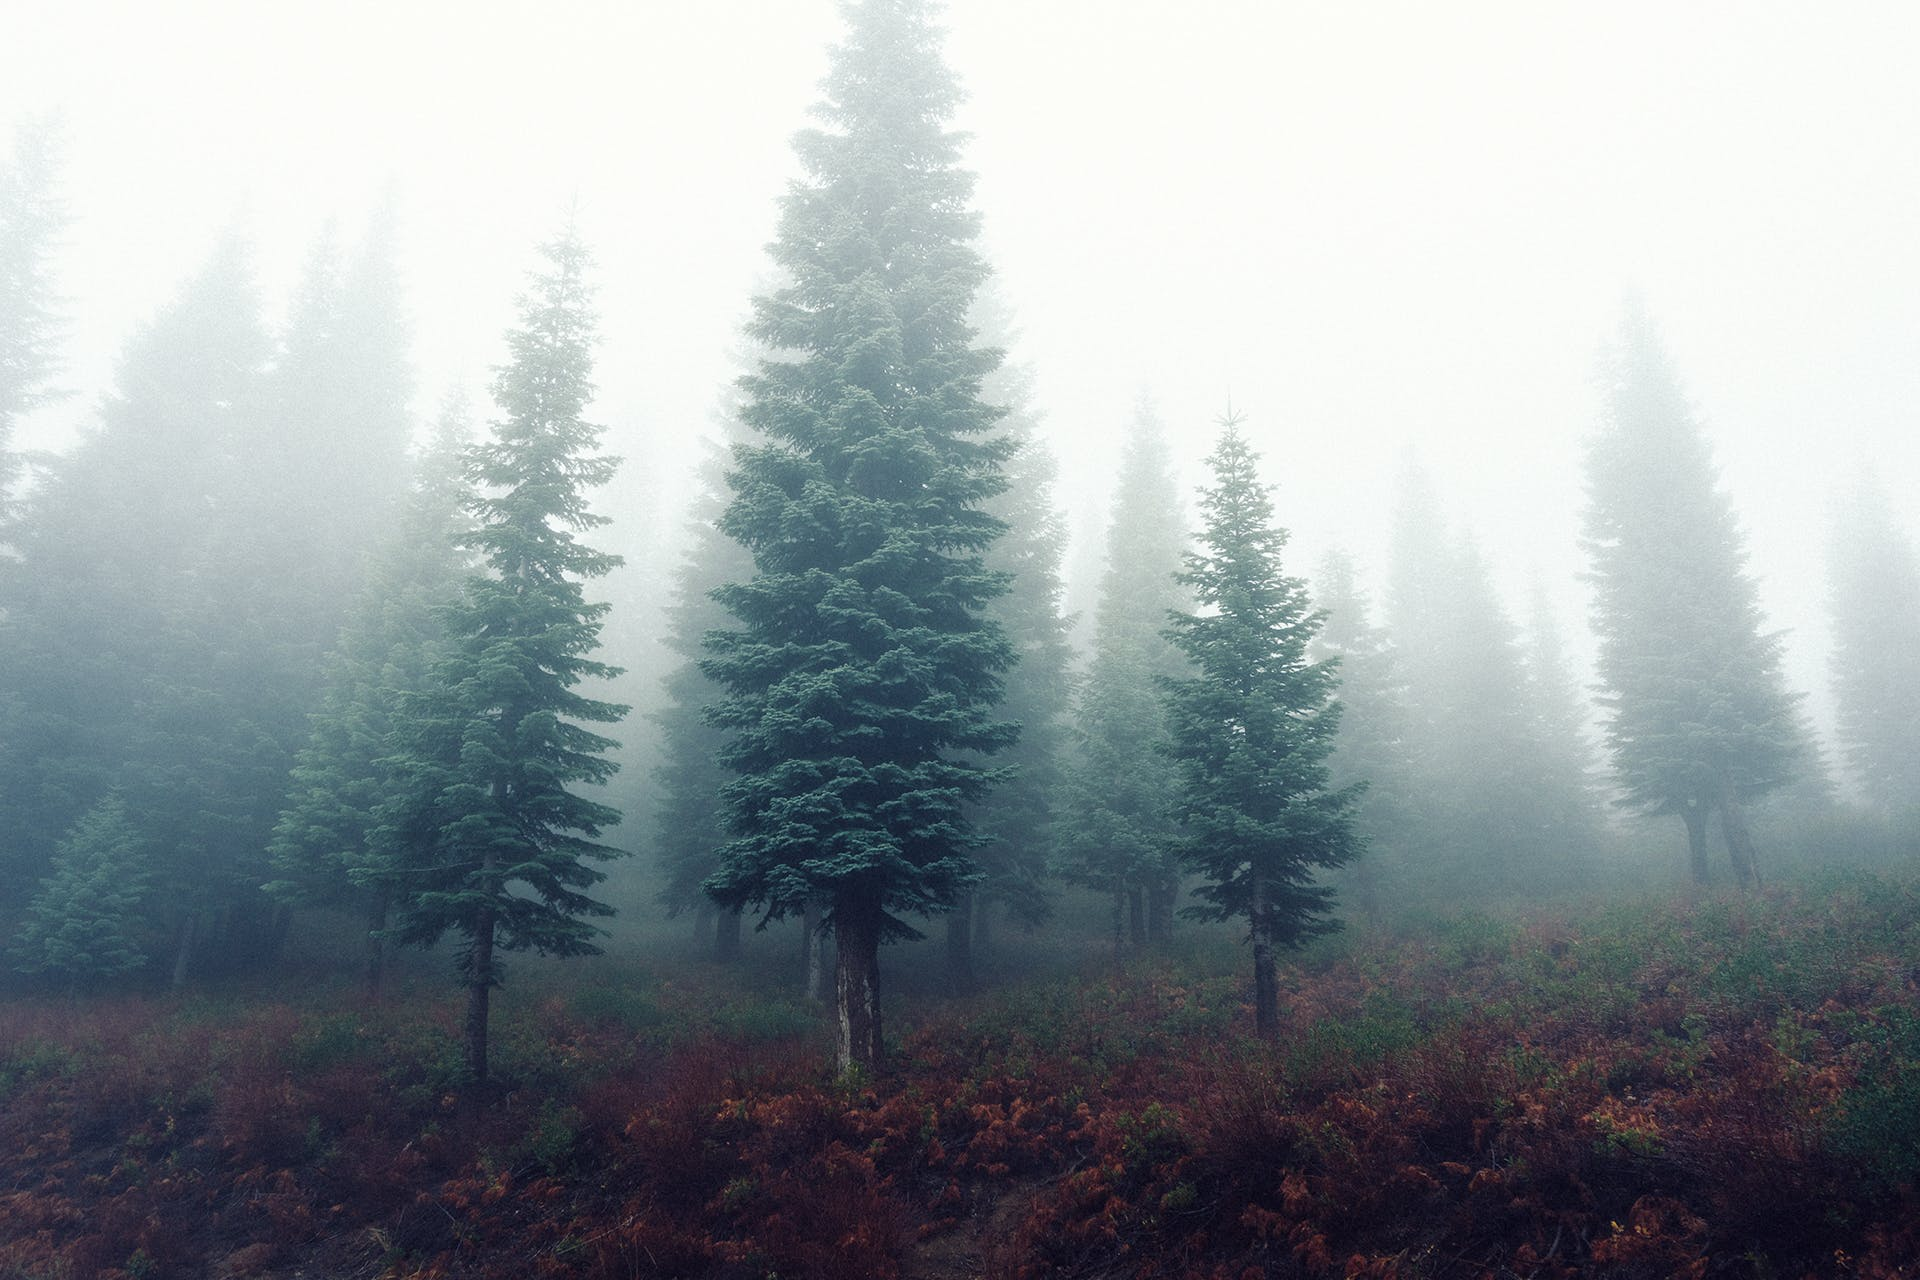 Free stock photo of forest, trees, fog, foggy